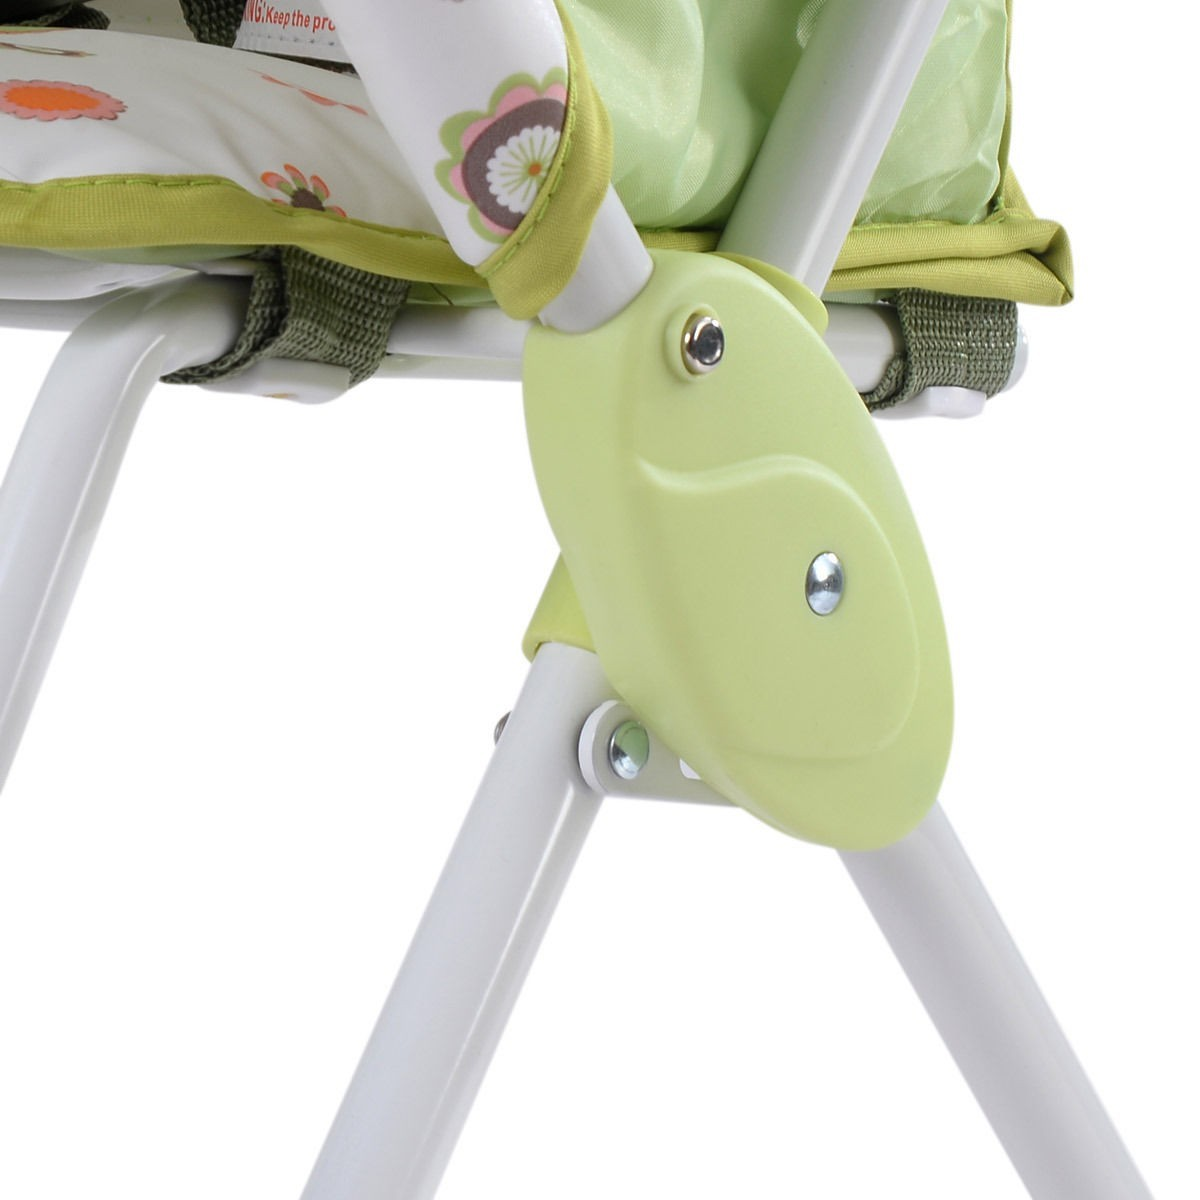 Baby High Chair Infant Toddler Feeding Booster Seat Folding Safe Portable - Green